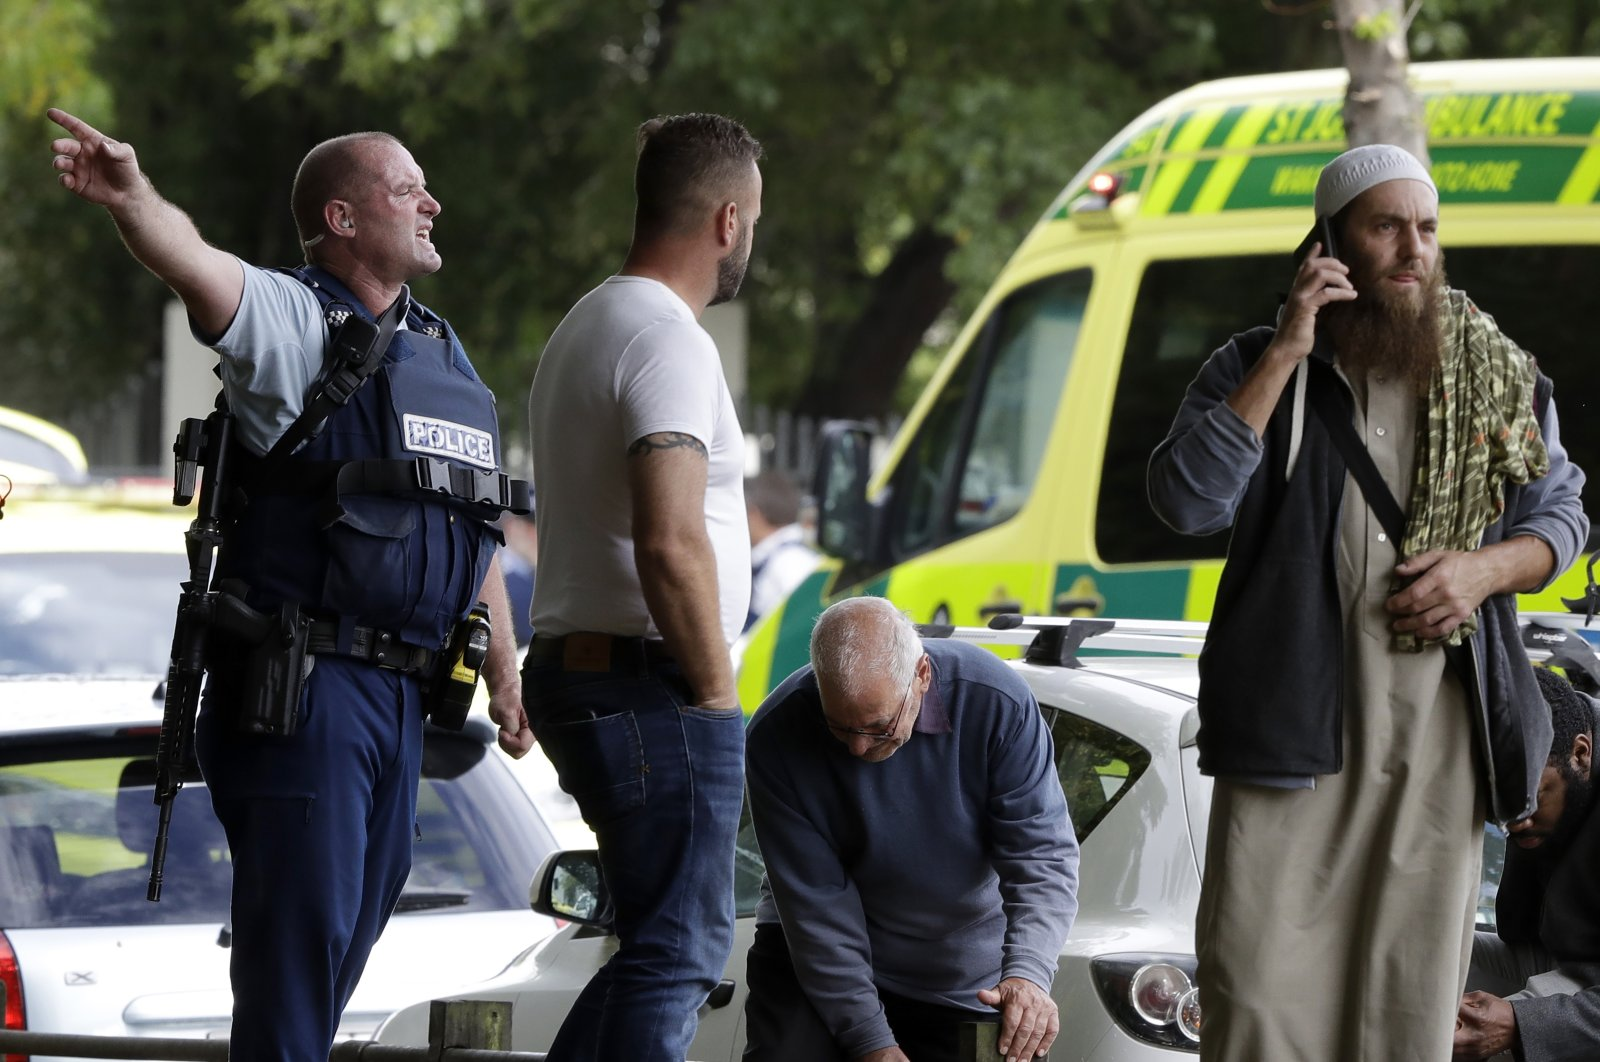 Police attempt to clear people from outside a mosque in central Christchurch, New Zealand, March 15, 2019. (AP Photo)